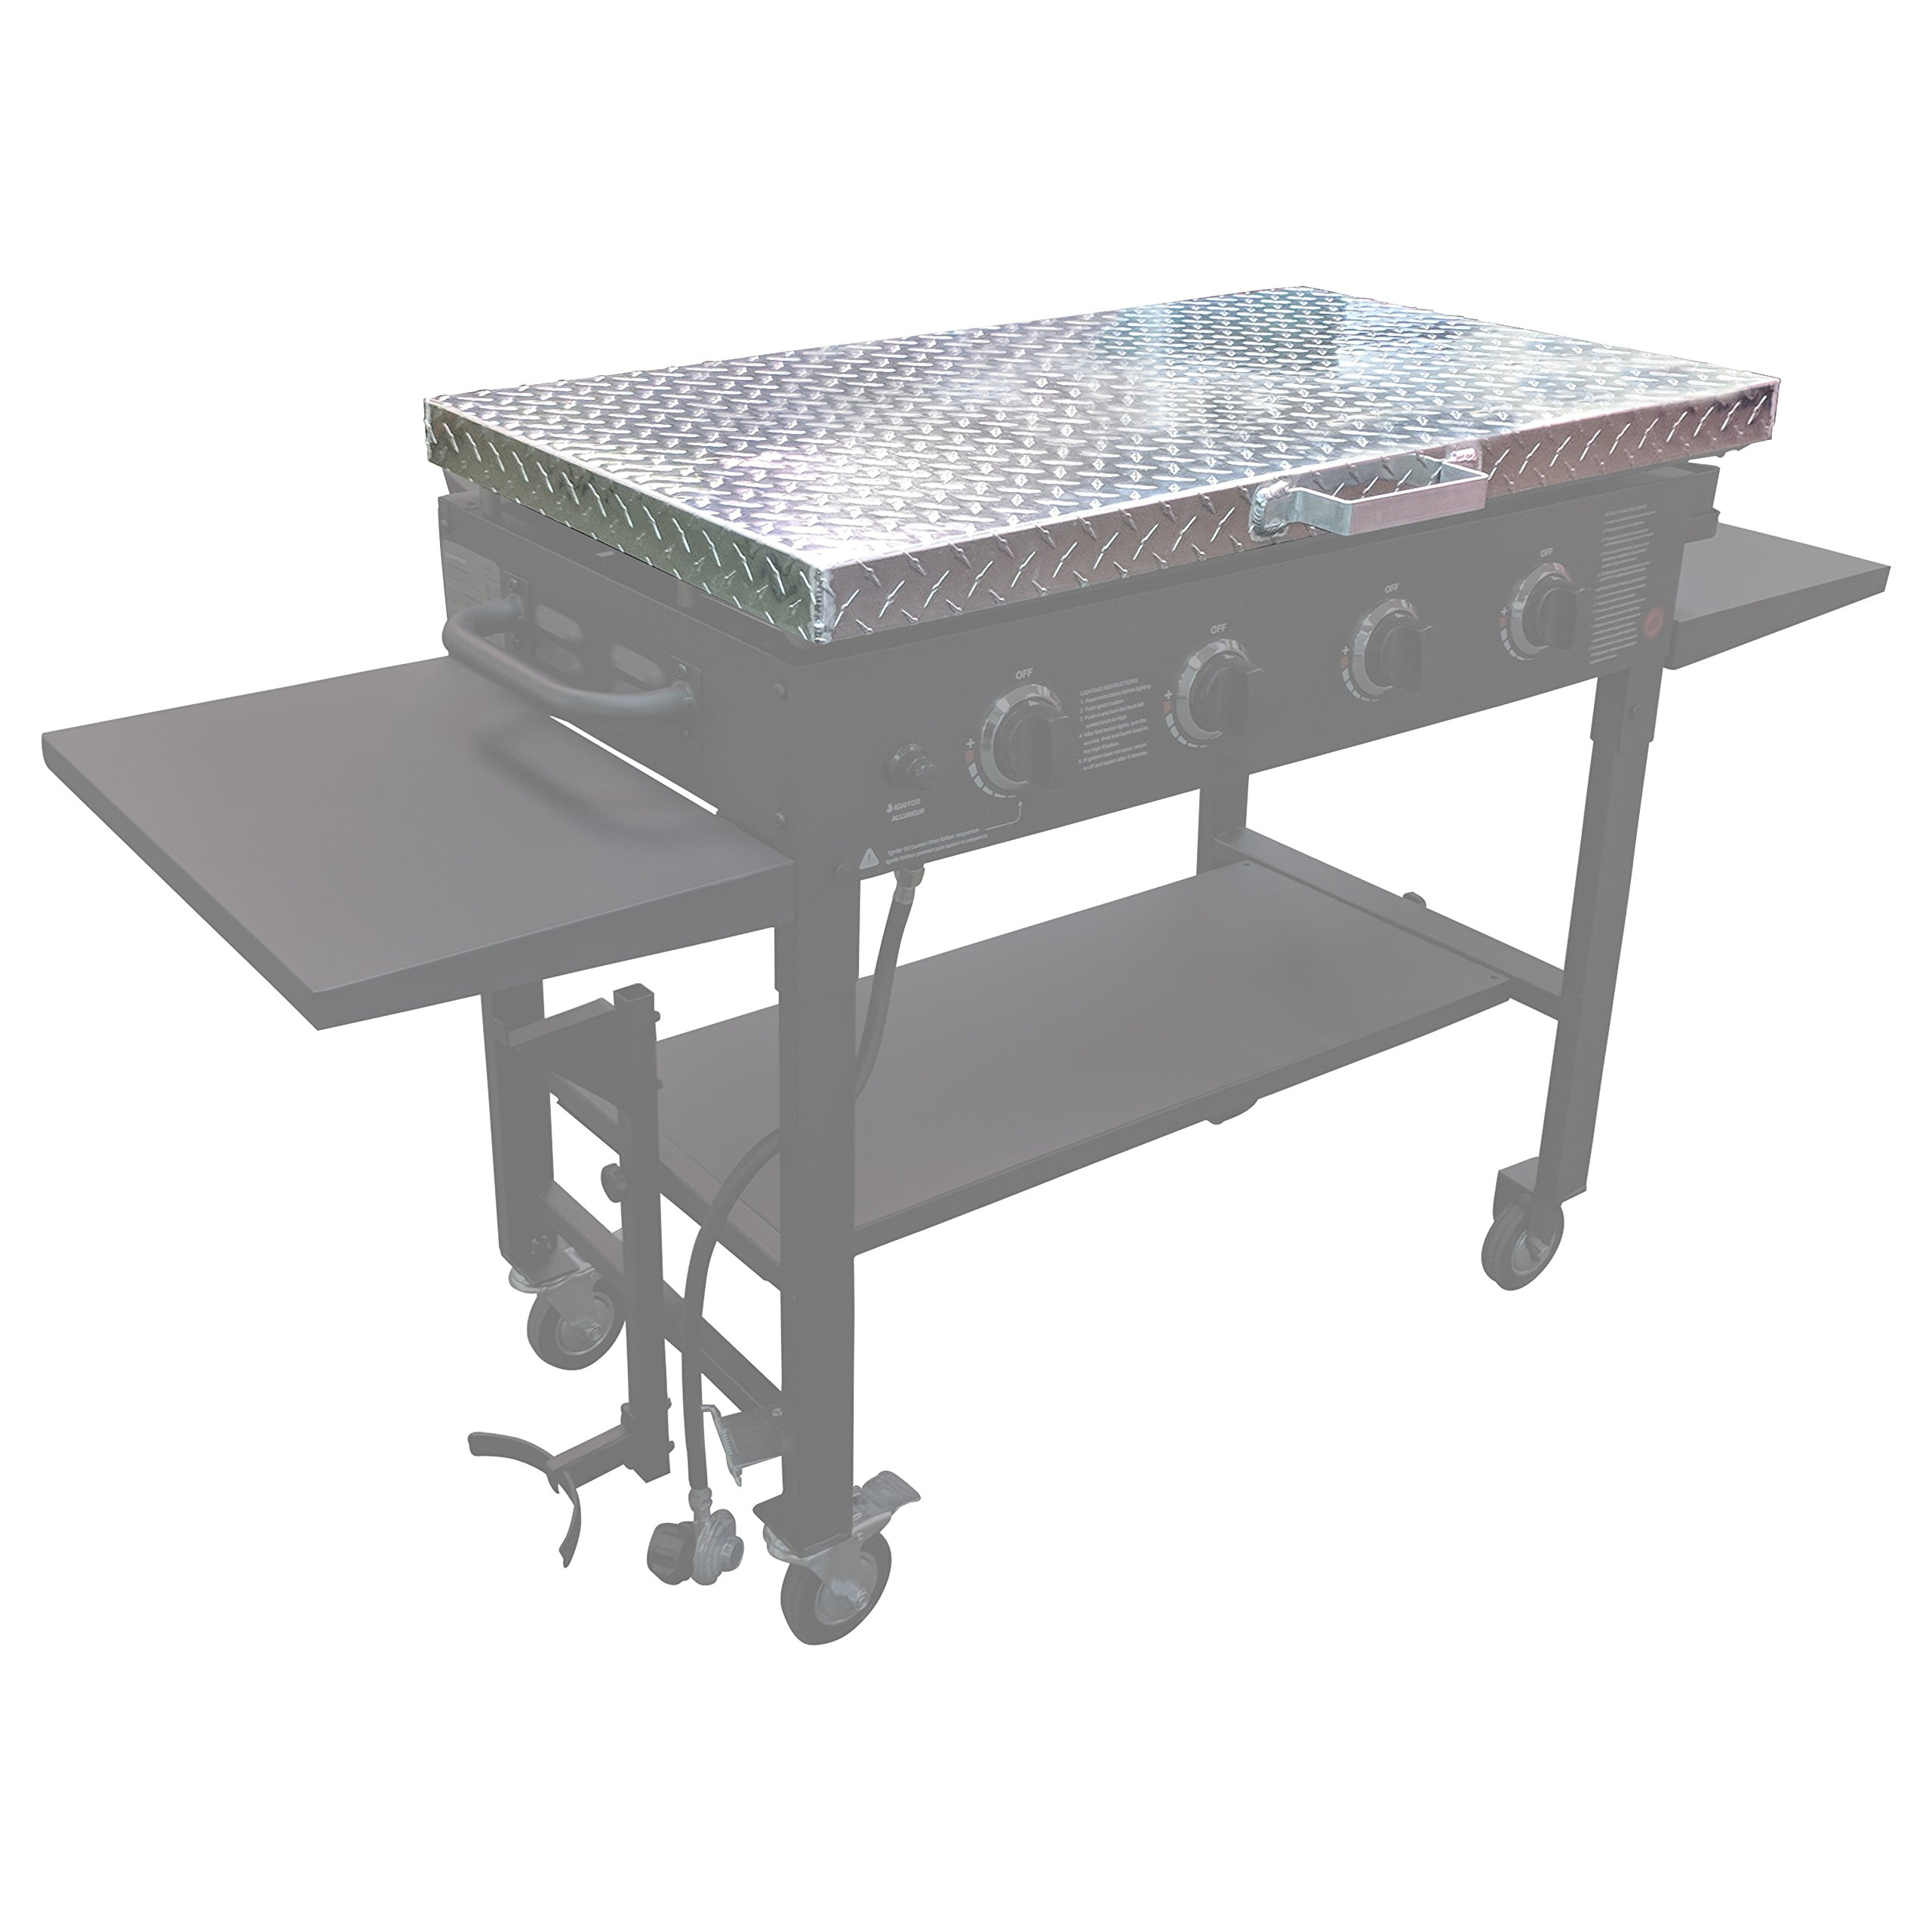 Titan Diamond Plated Aluminum Grill Cover Fits 36'' Blackstone Griddle by Titan Great Outdoors